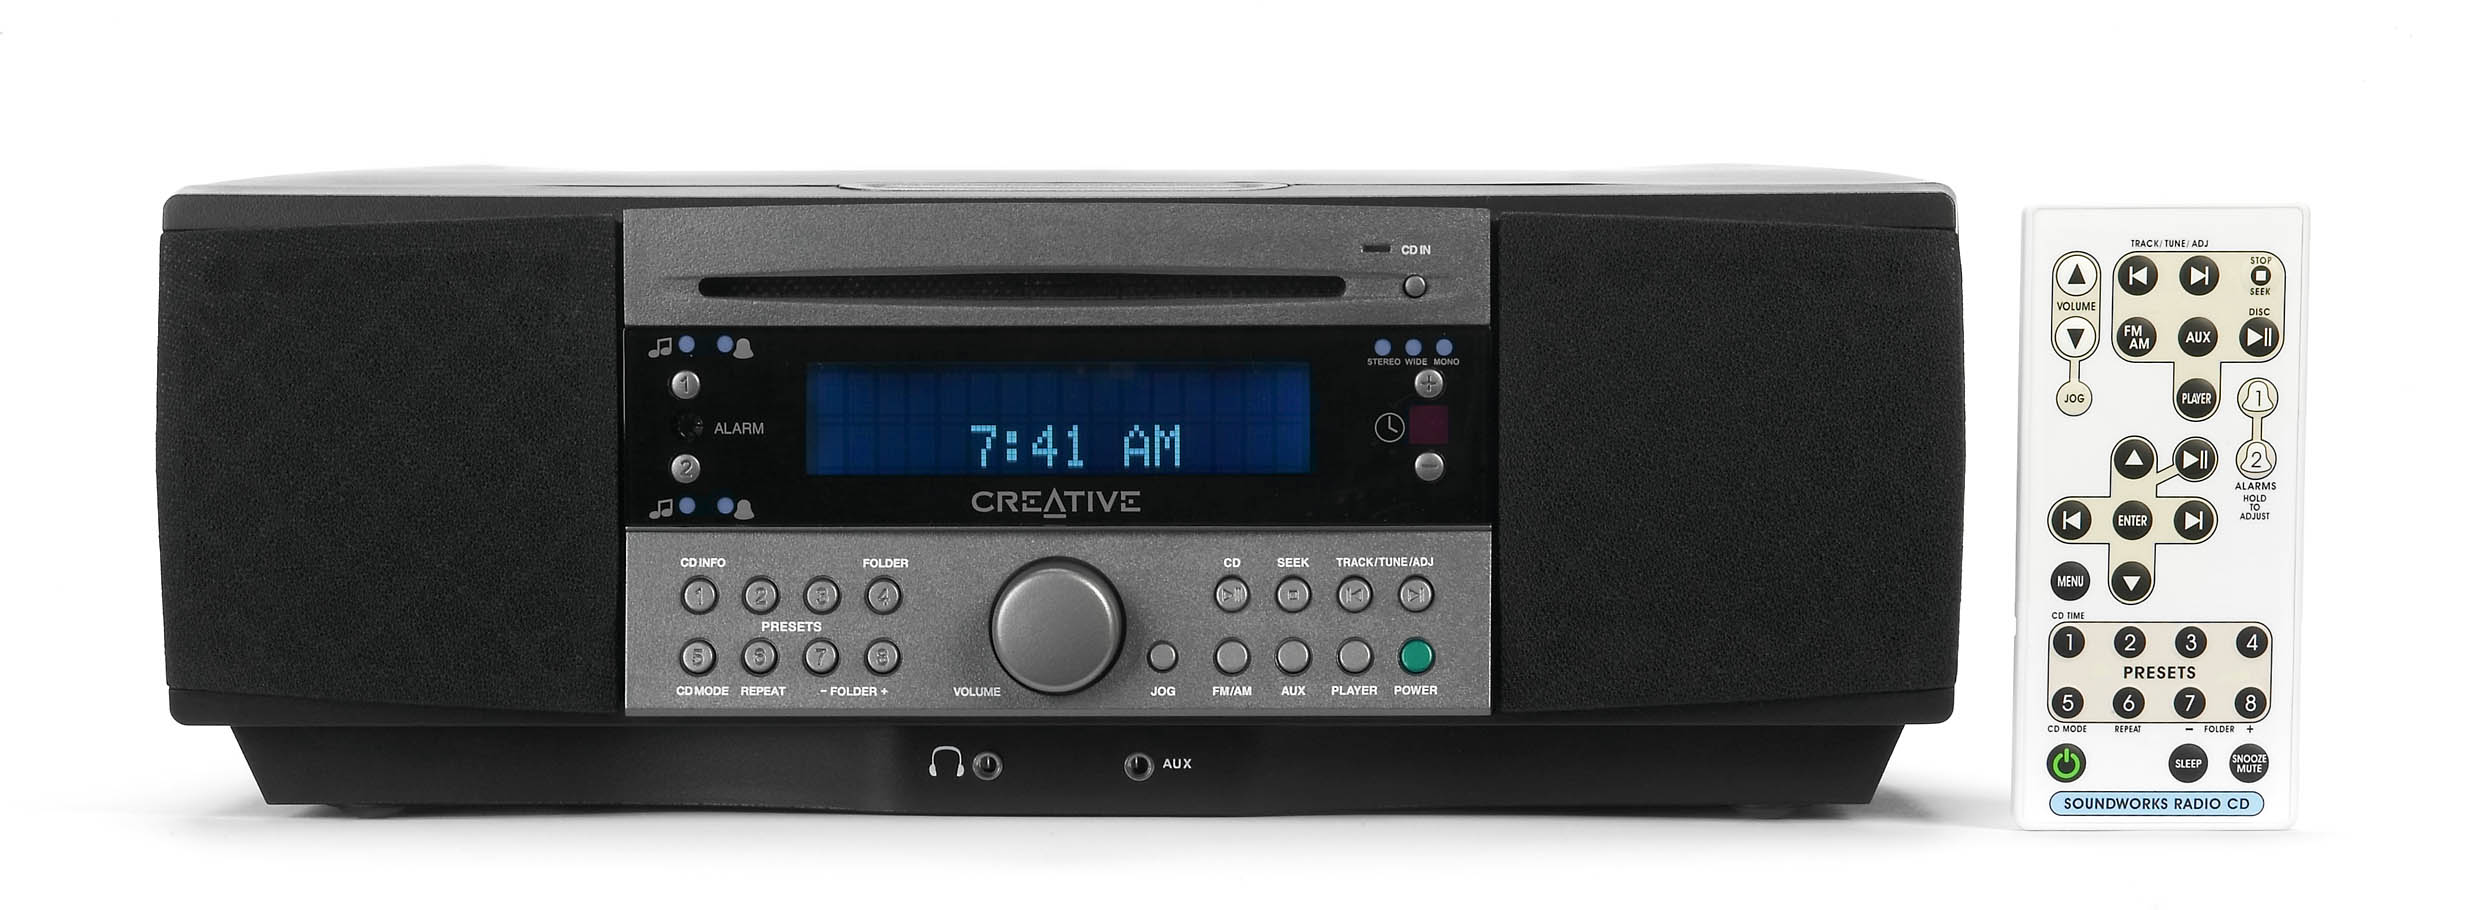 Creative SoundWorks 745 Radio mit integriertem CD-Player